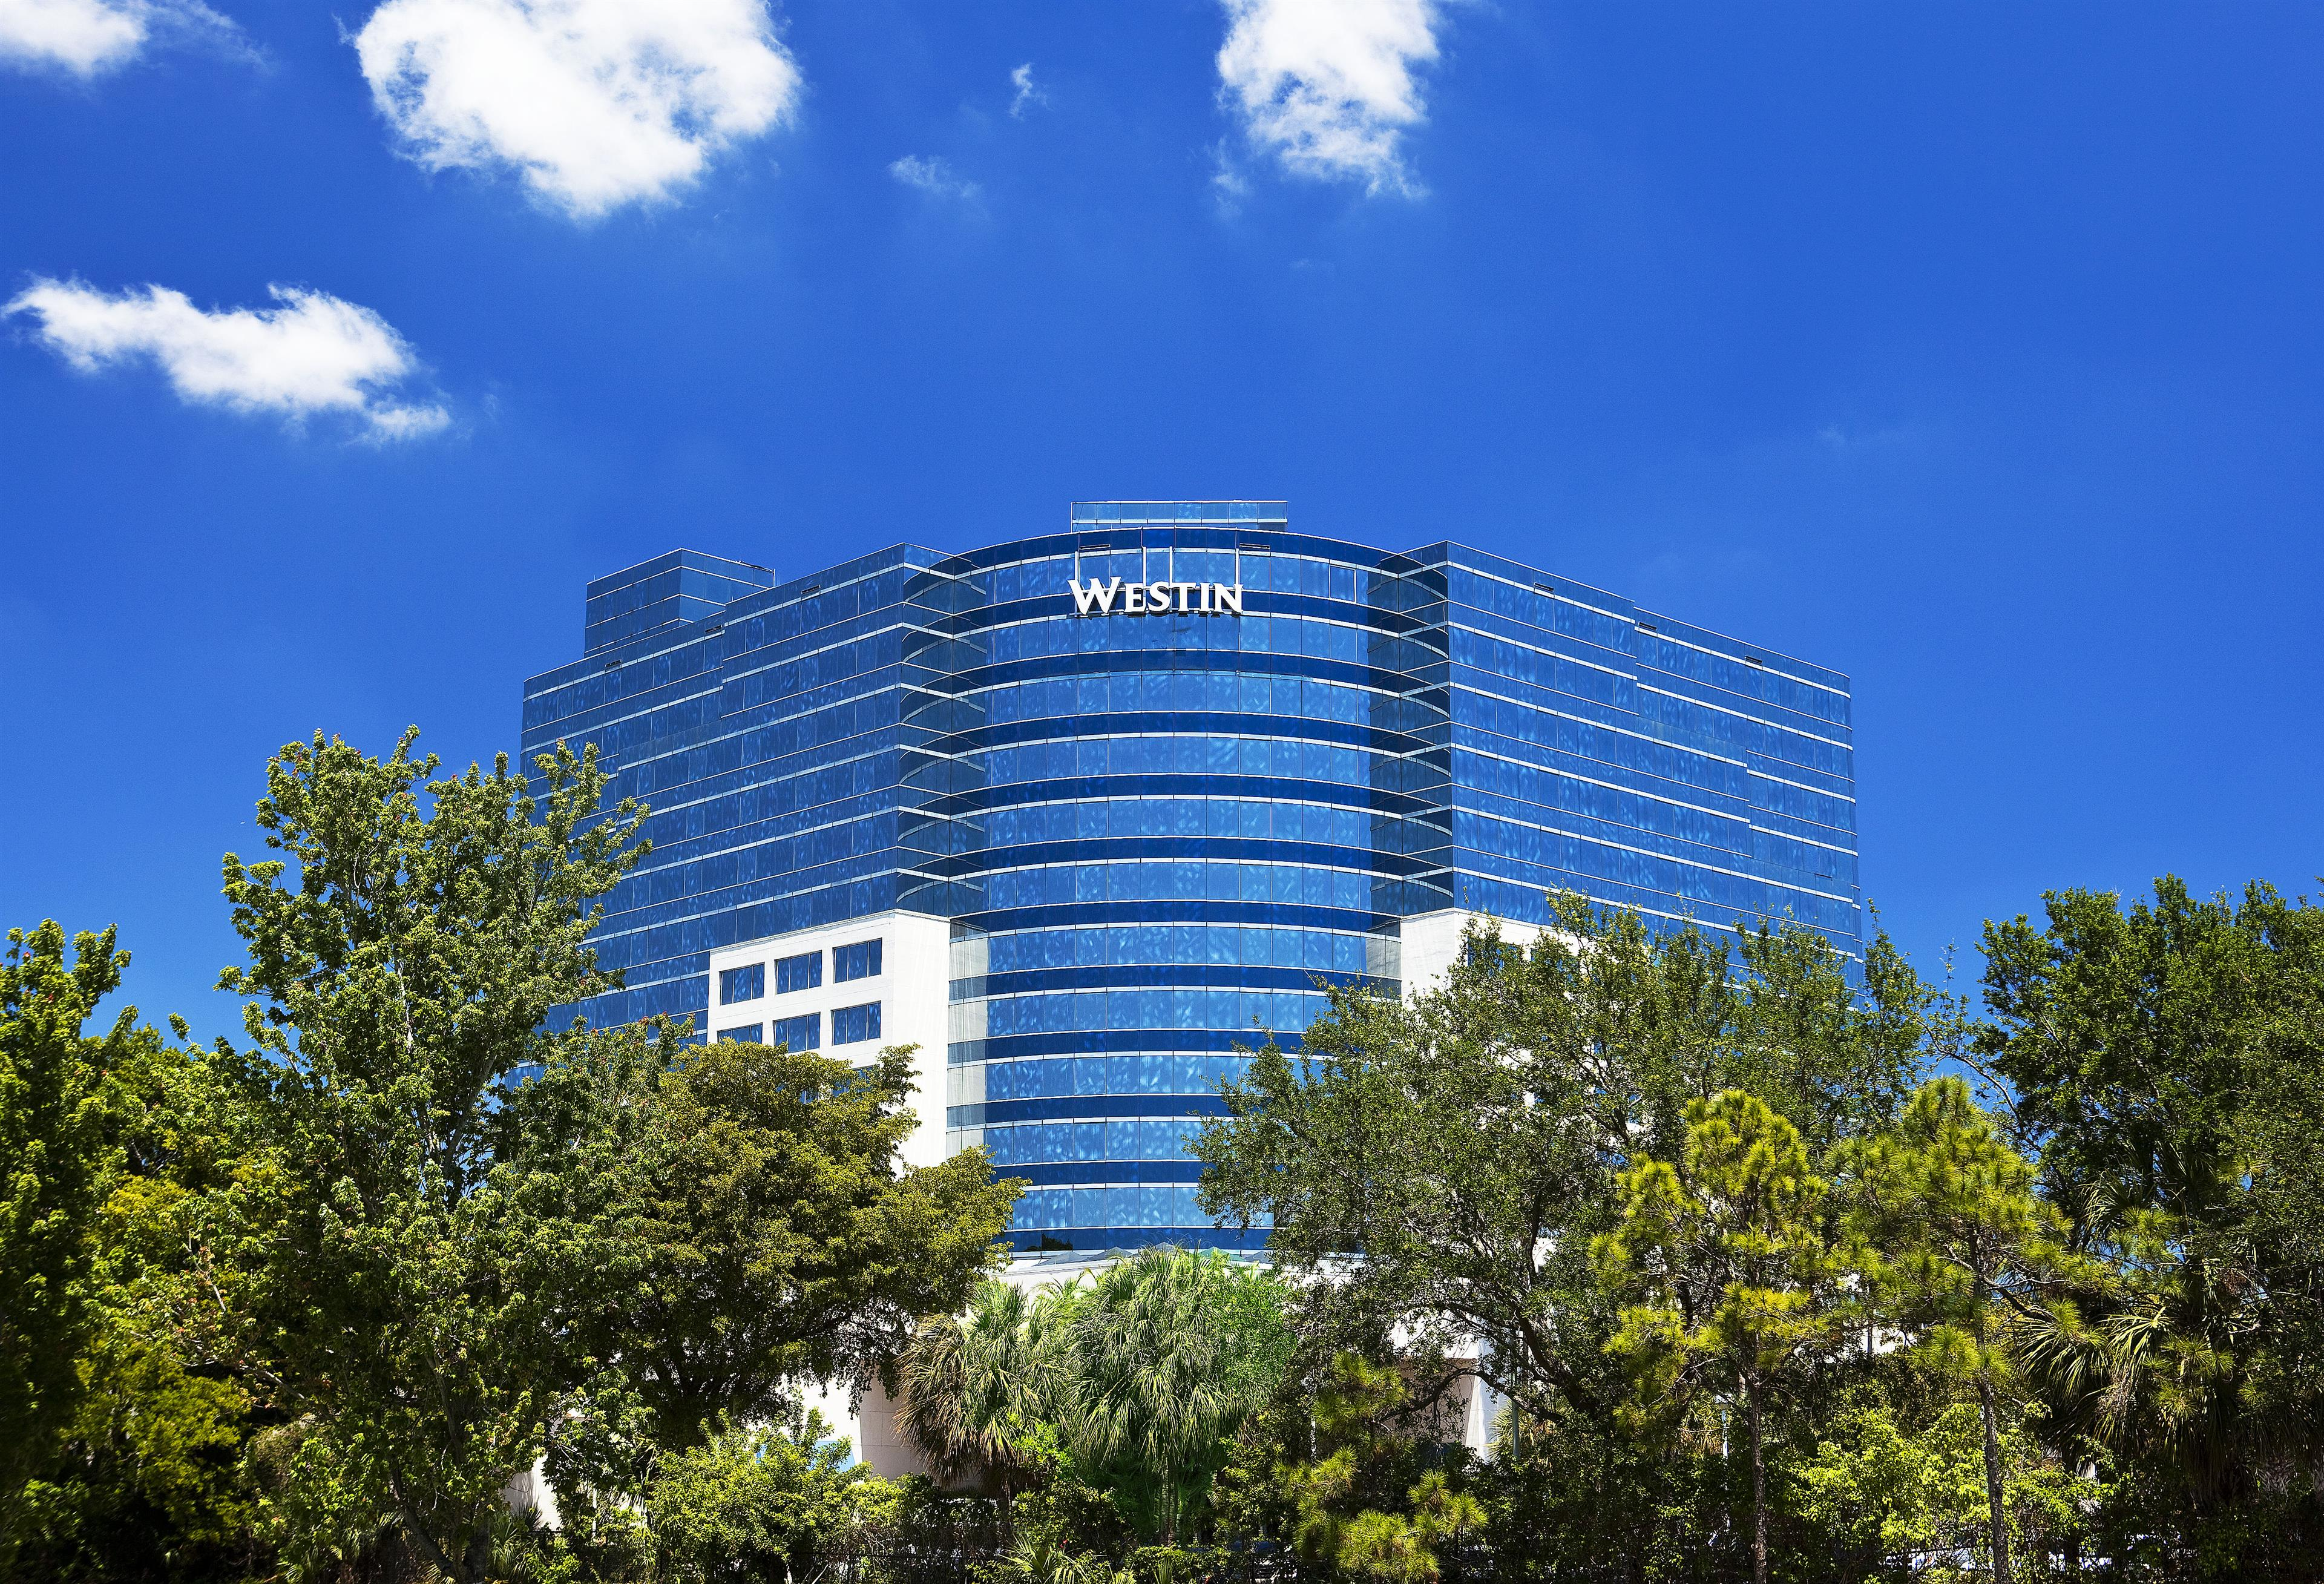 The Westin Fort Lauderdale image 0